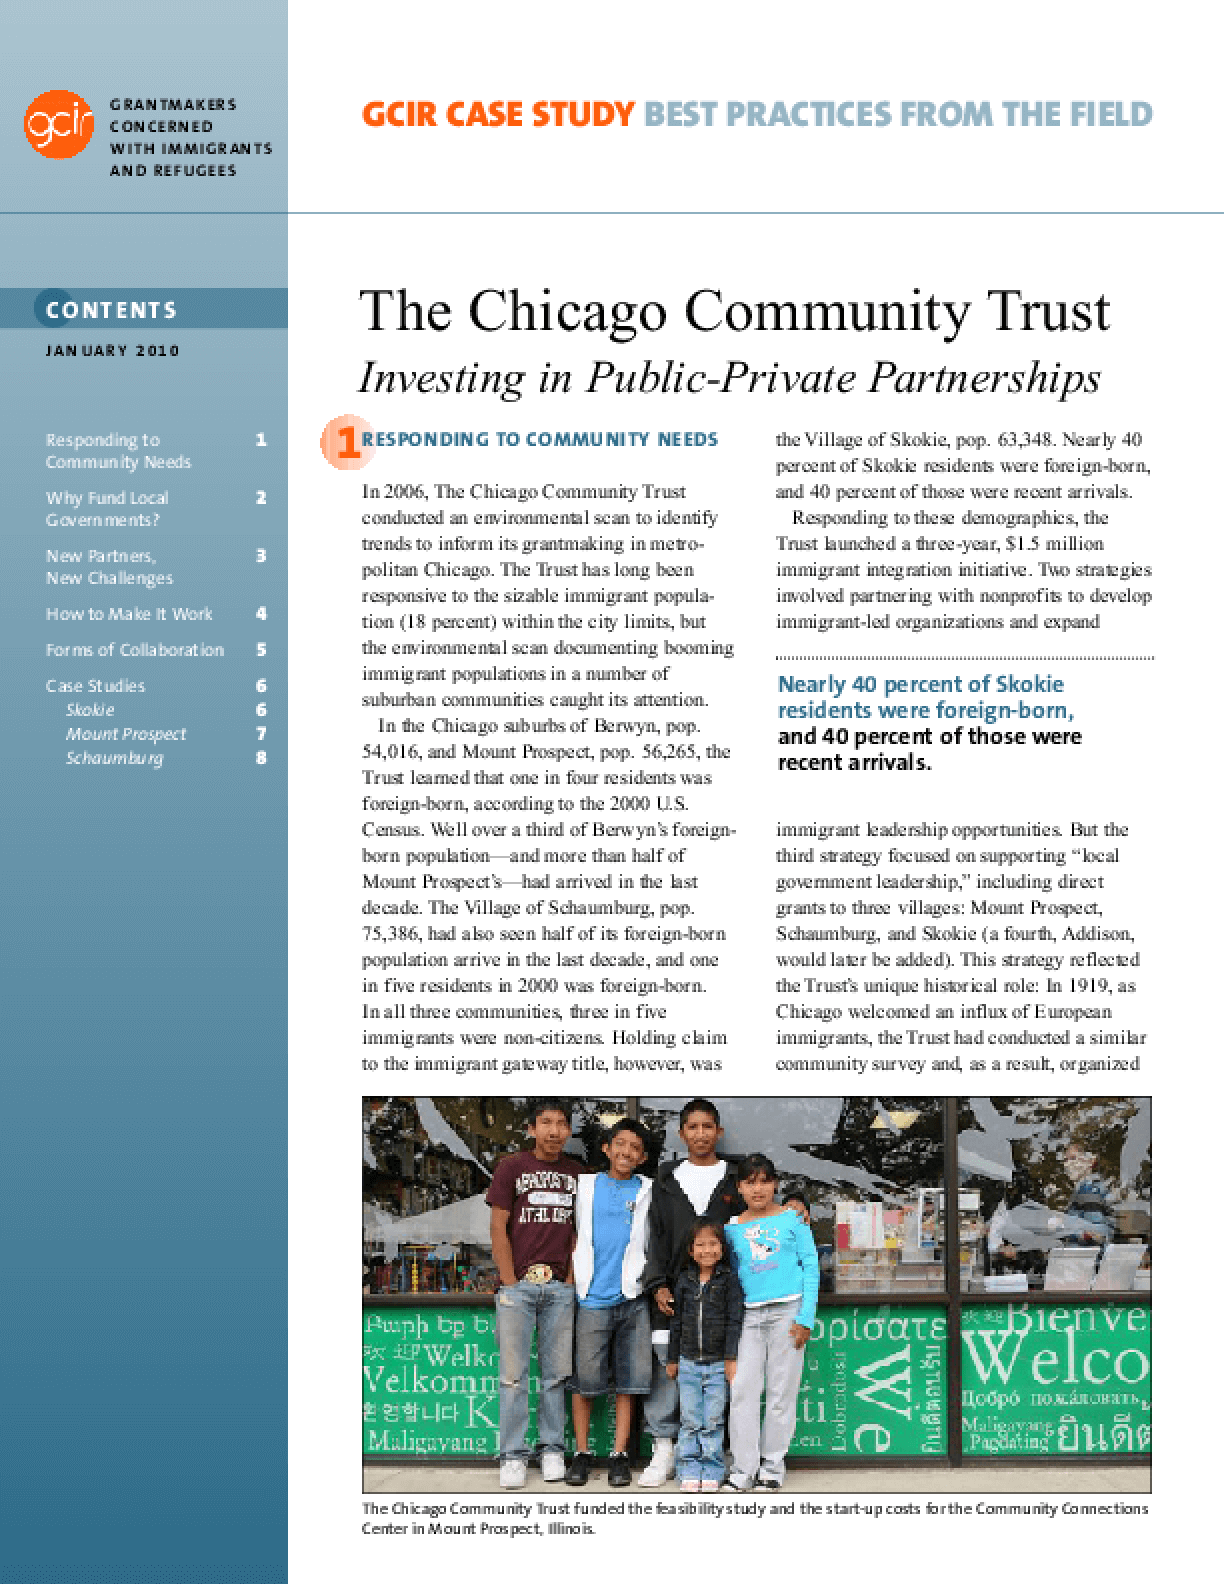 The Chicago Community Trust: Investing in Public-Private Partnerships